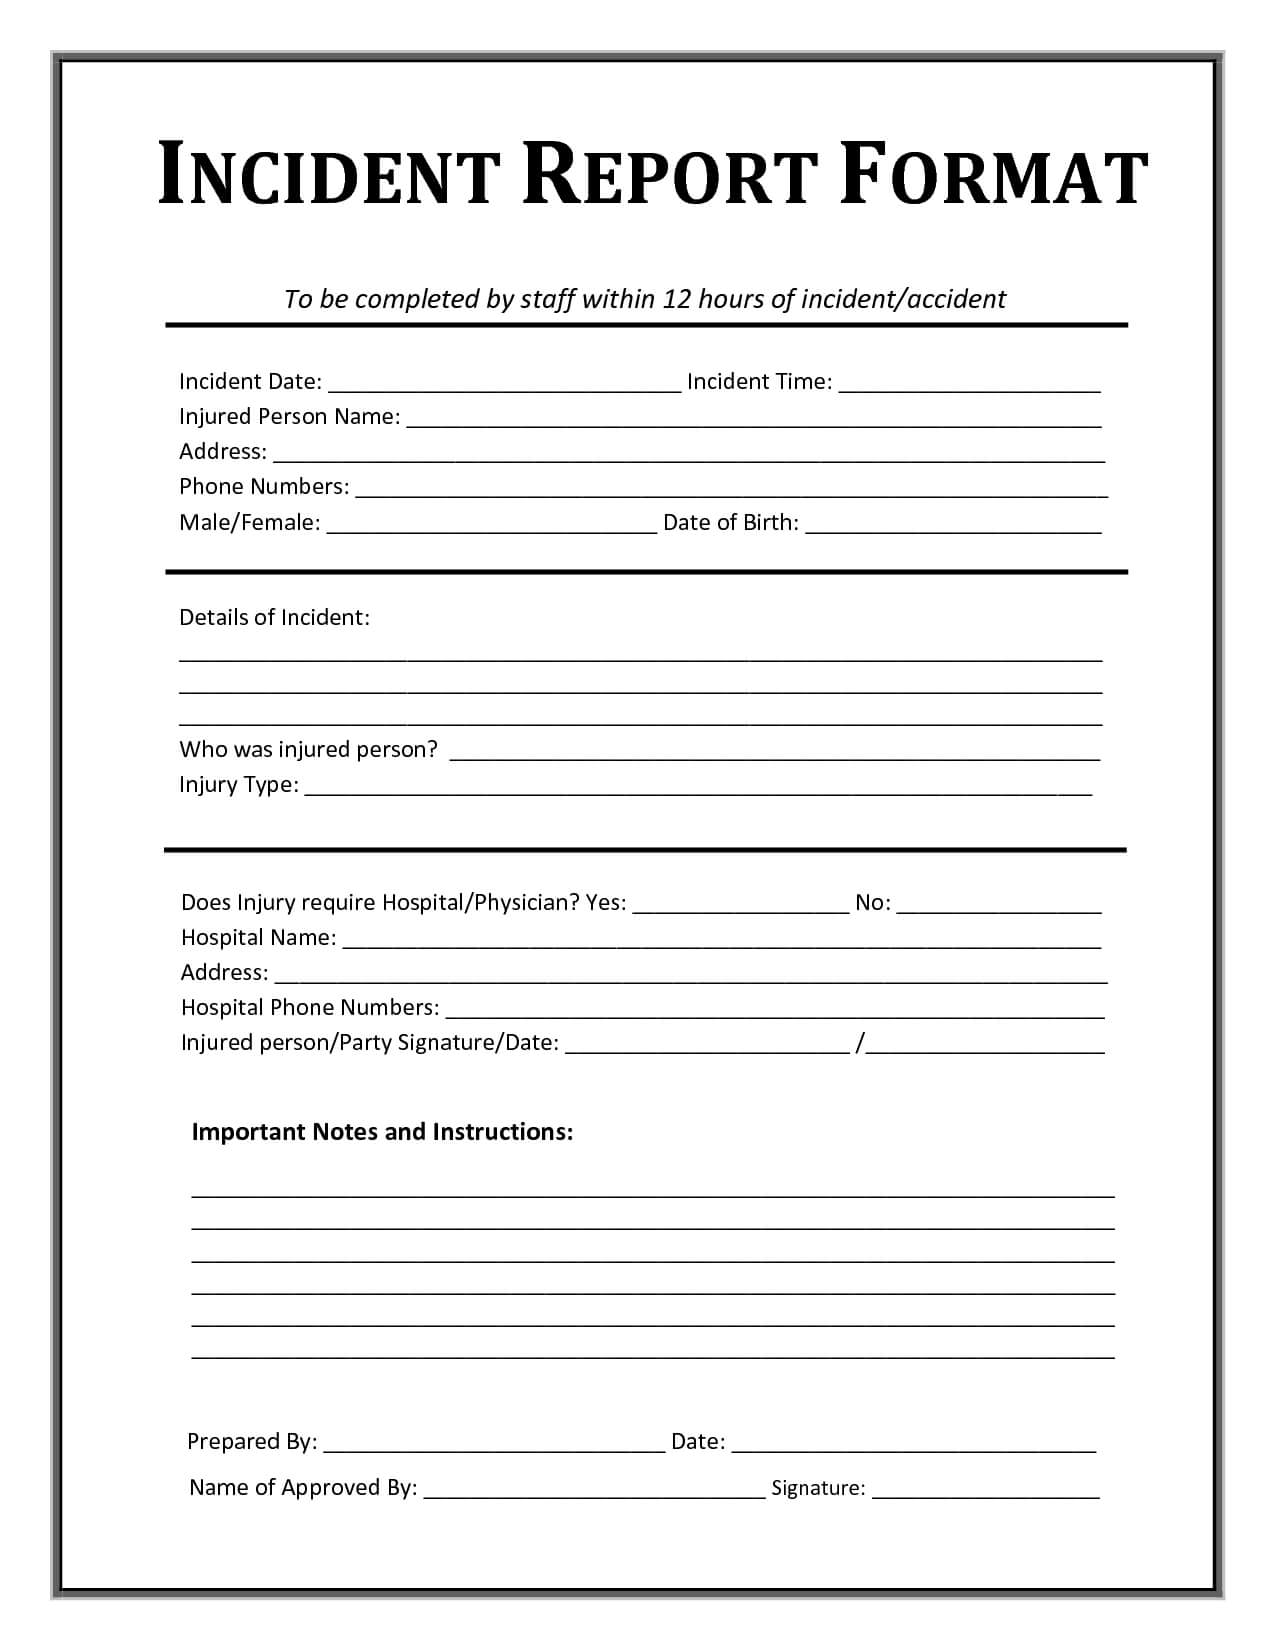 Incident Report Template | Incident Report, Incident Report In Injury Report Form Template